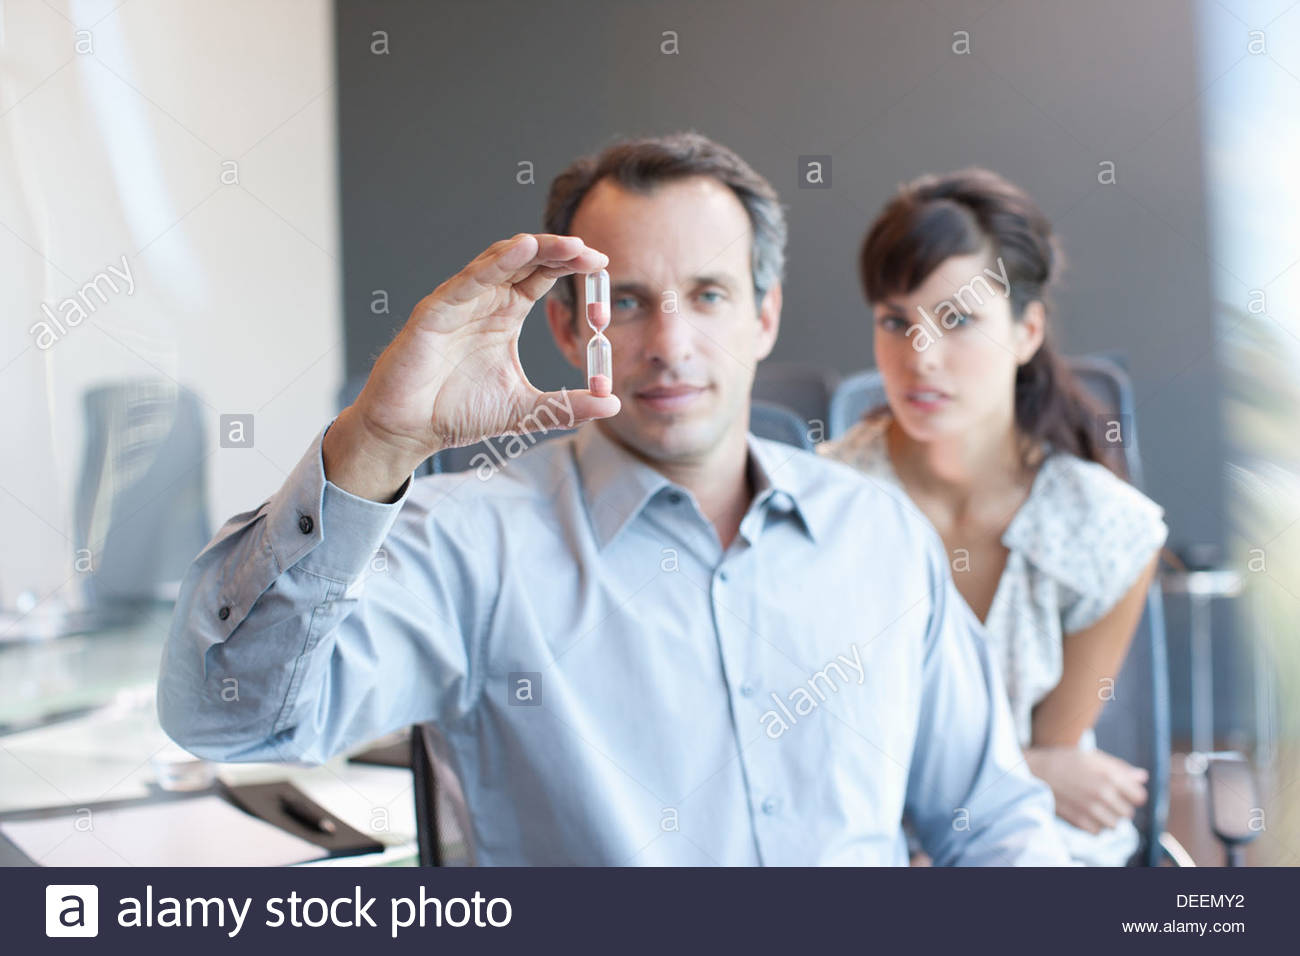 Businessman looking at hourglass in conference room - Stock Image